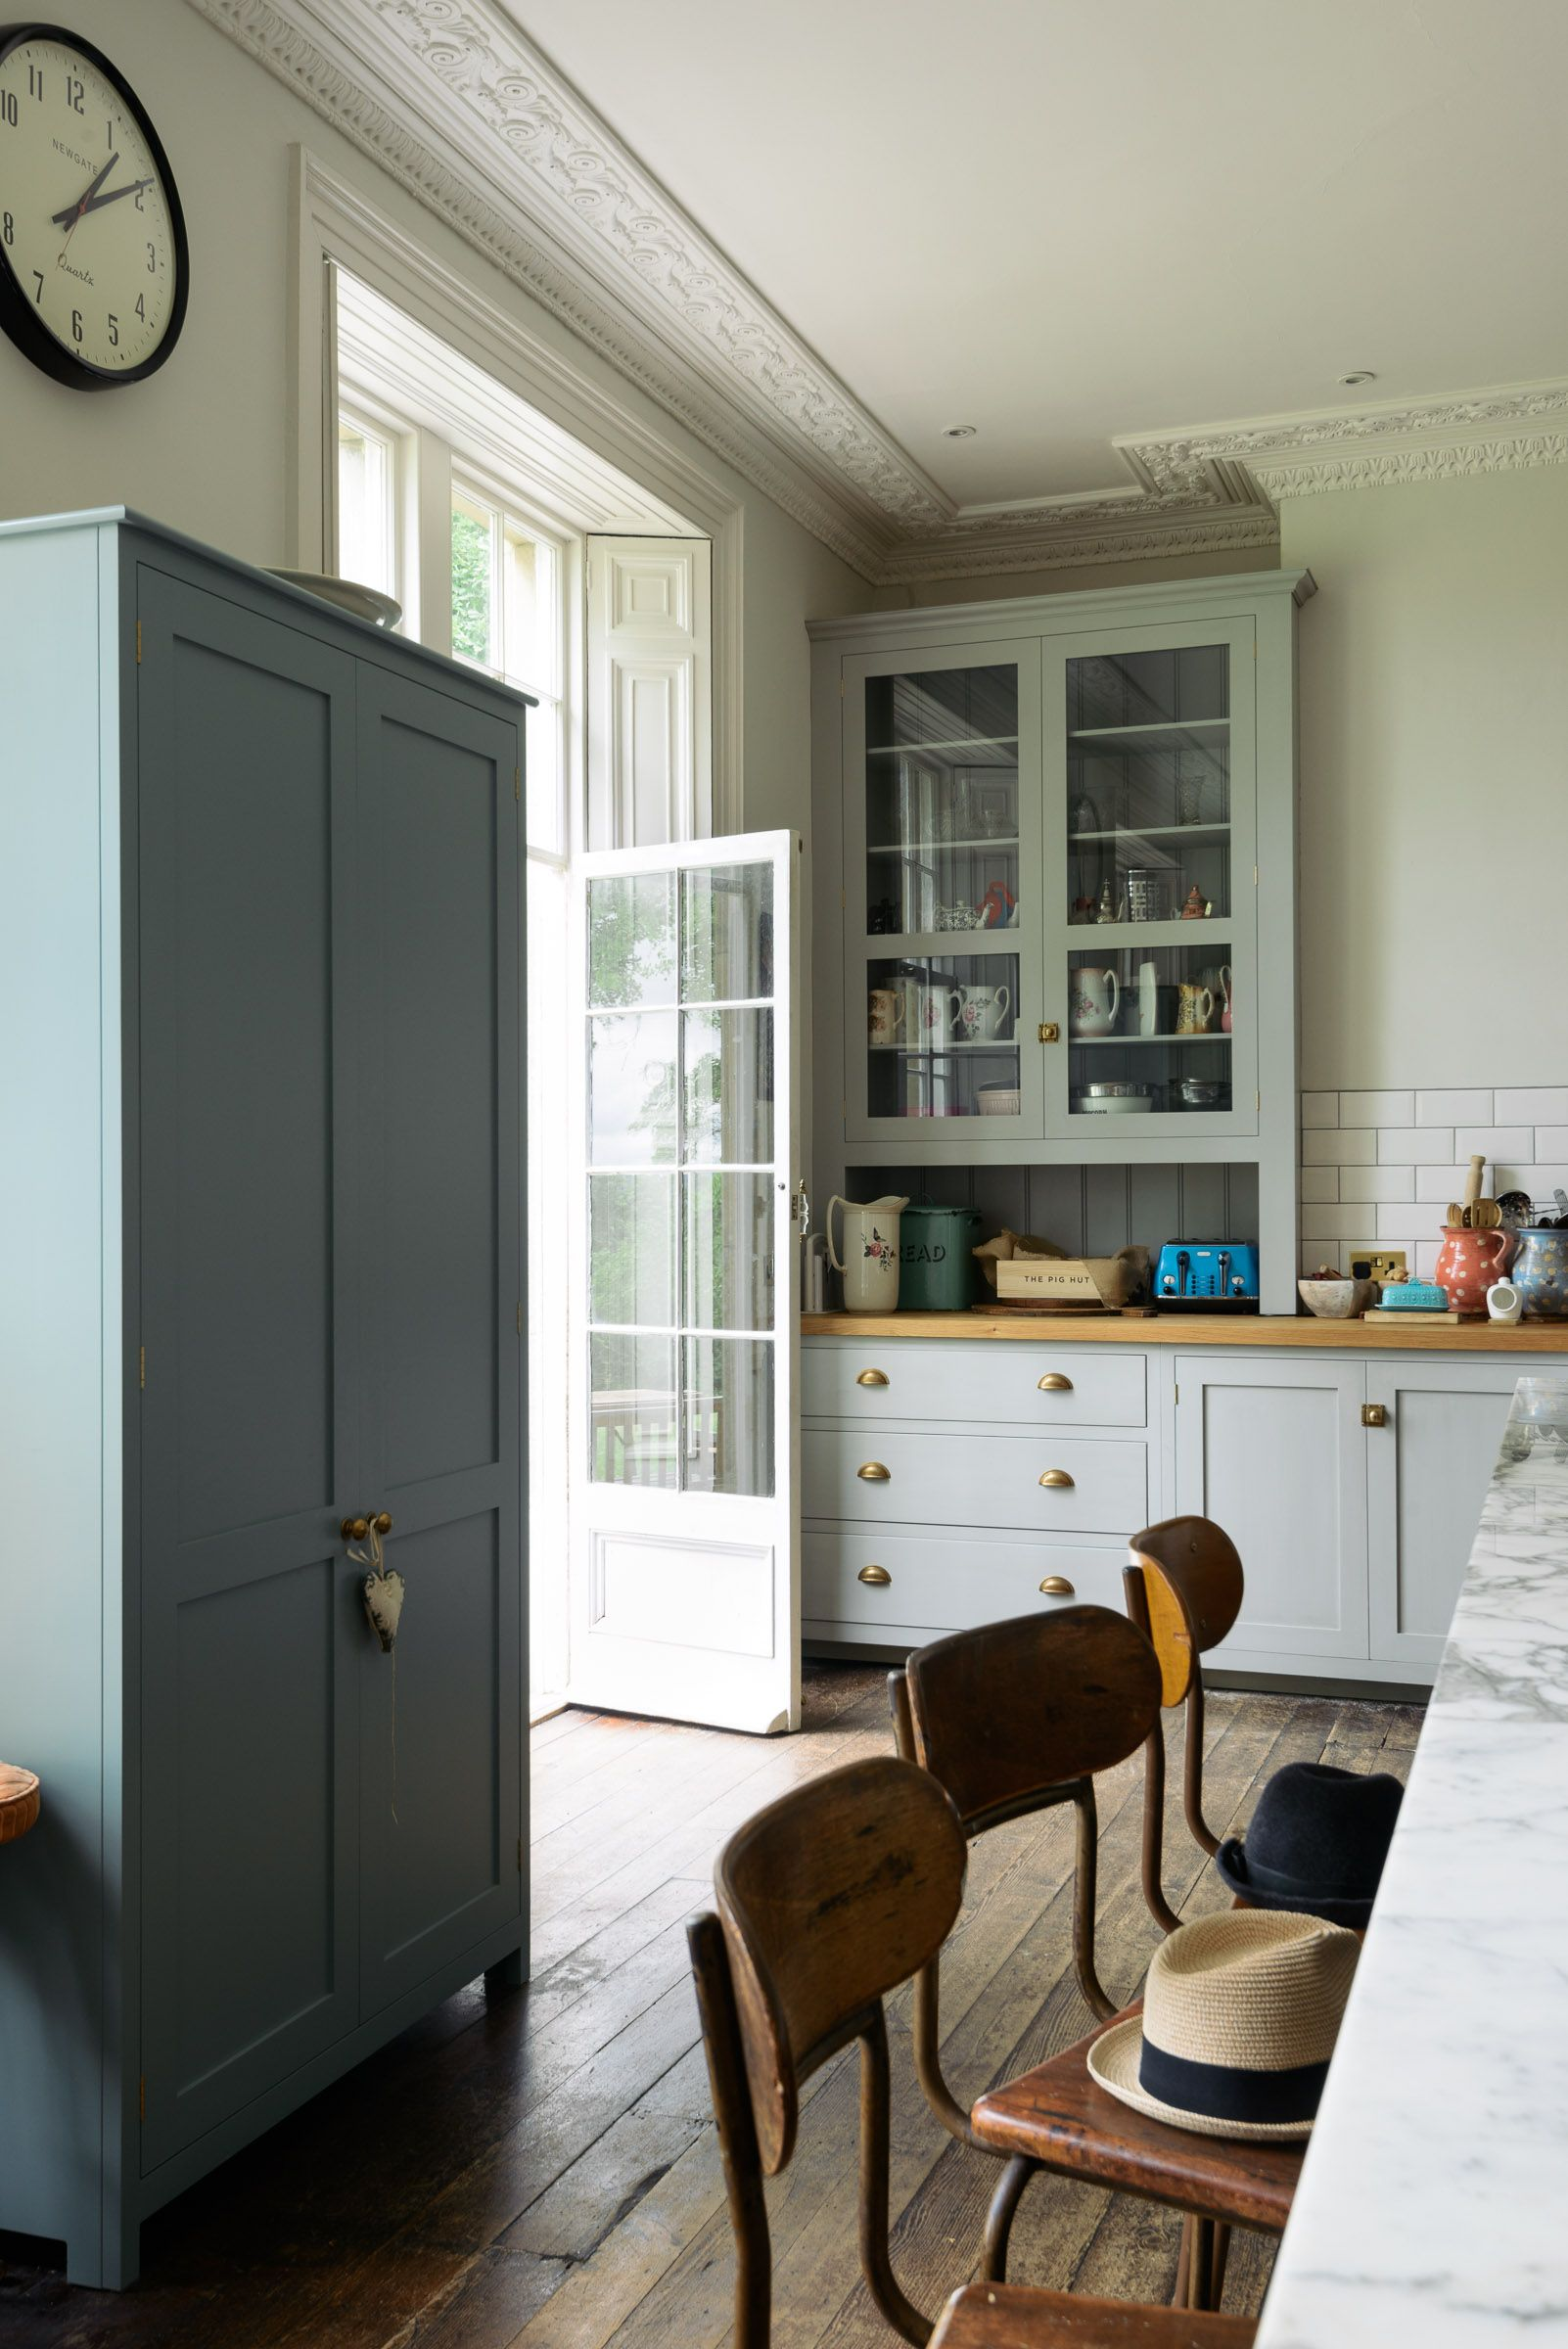 A beautiful big pantry cupboard painted in